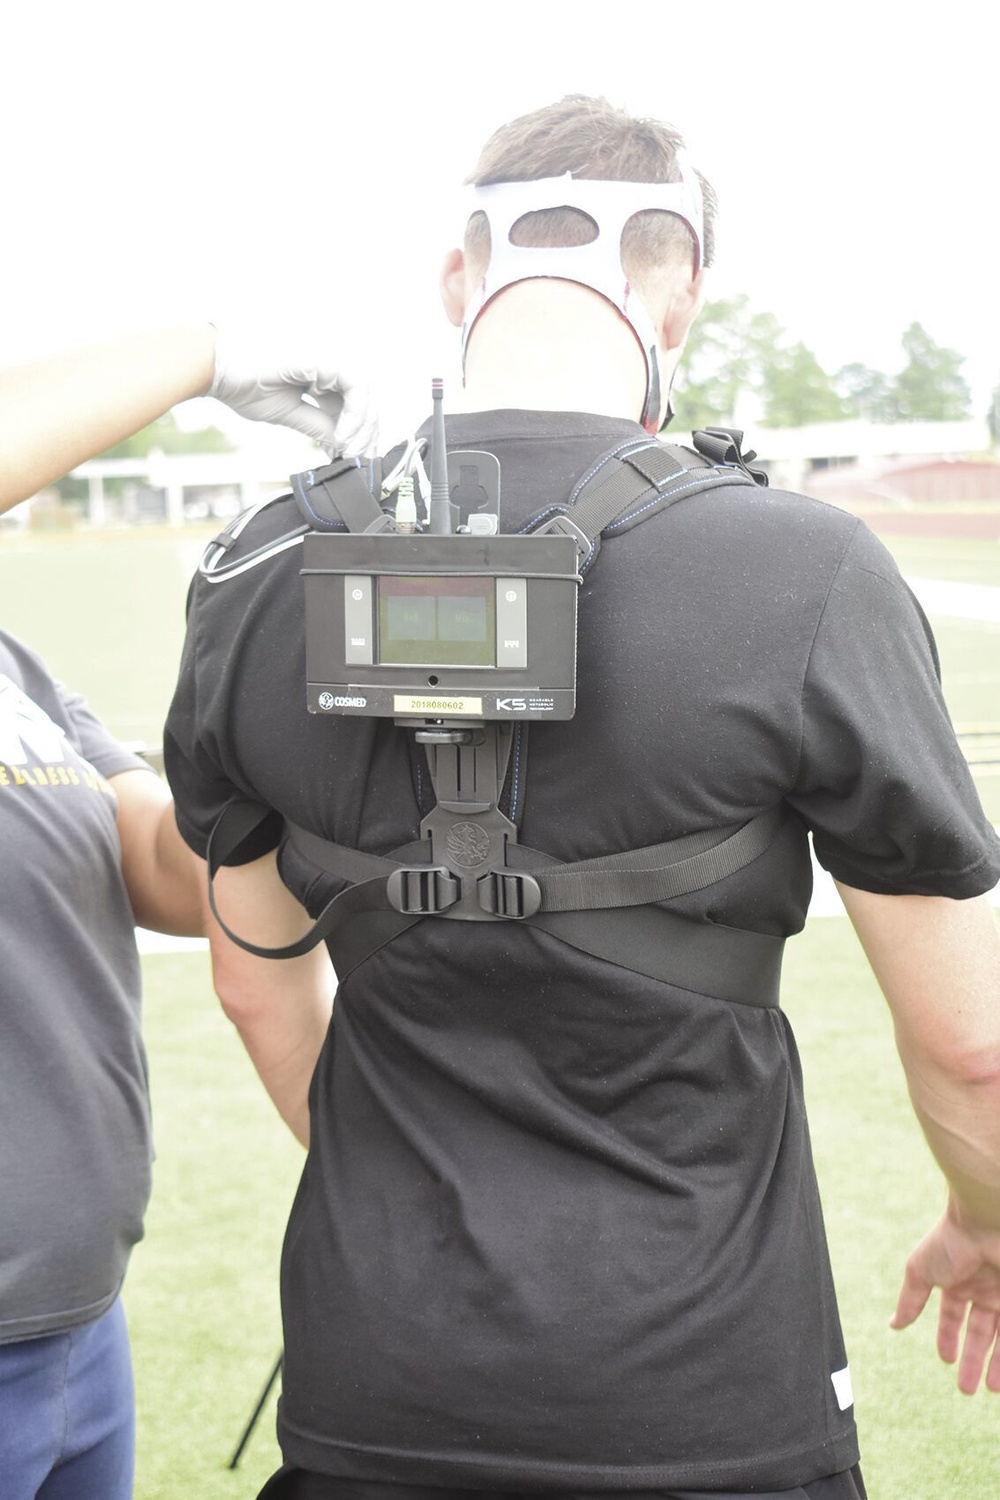 Screaming Eagles first to pilot mobile metabolic testing tech